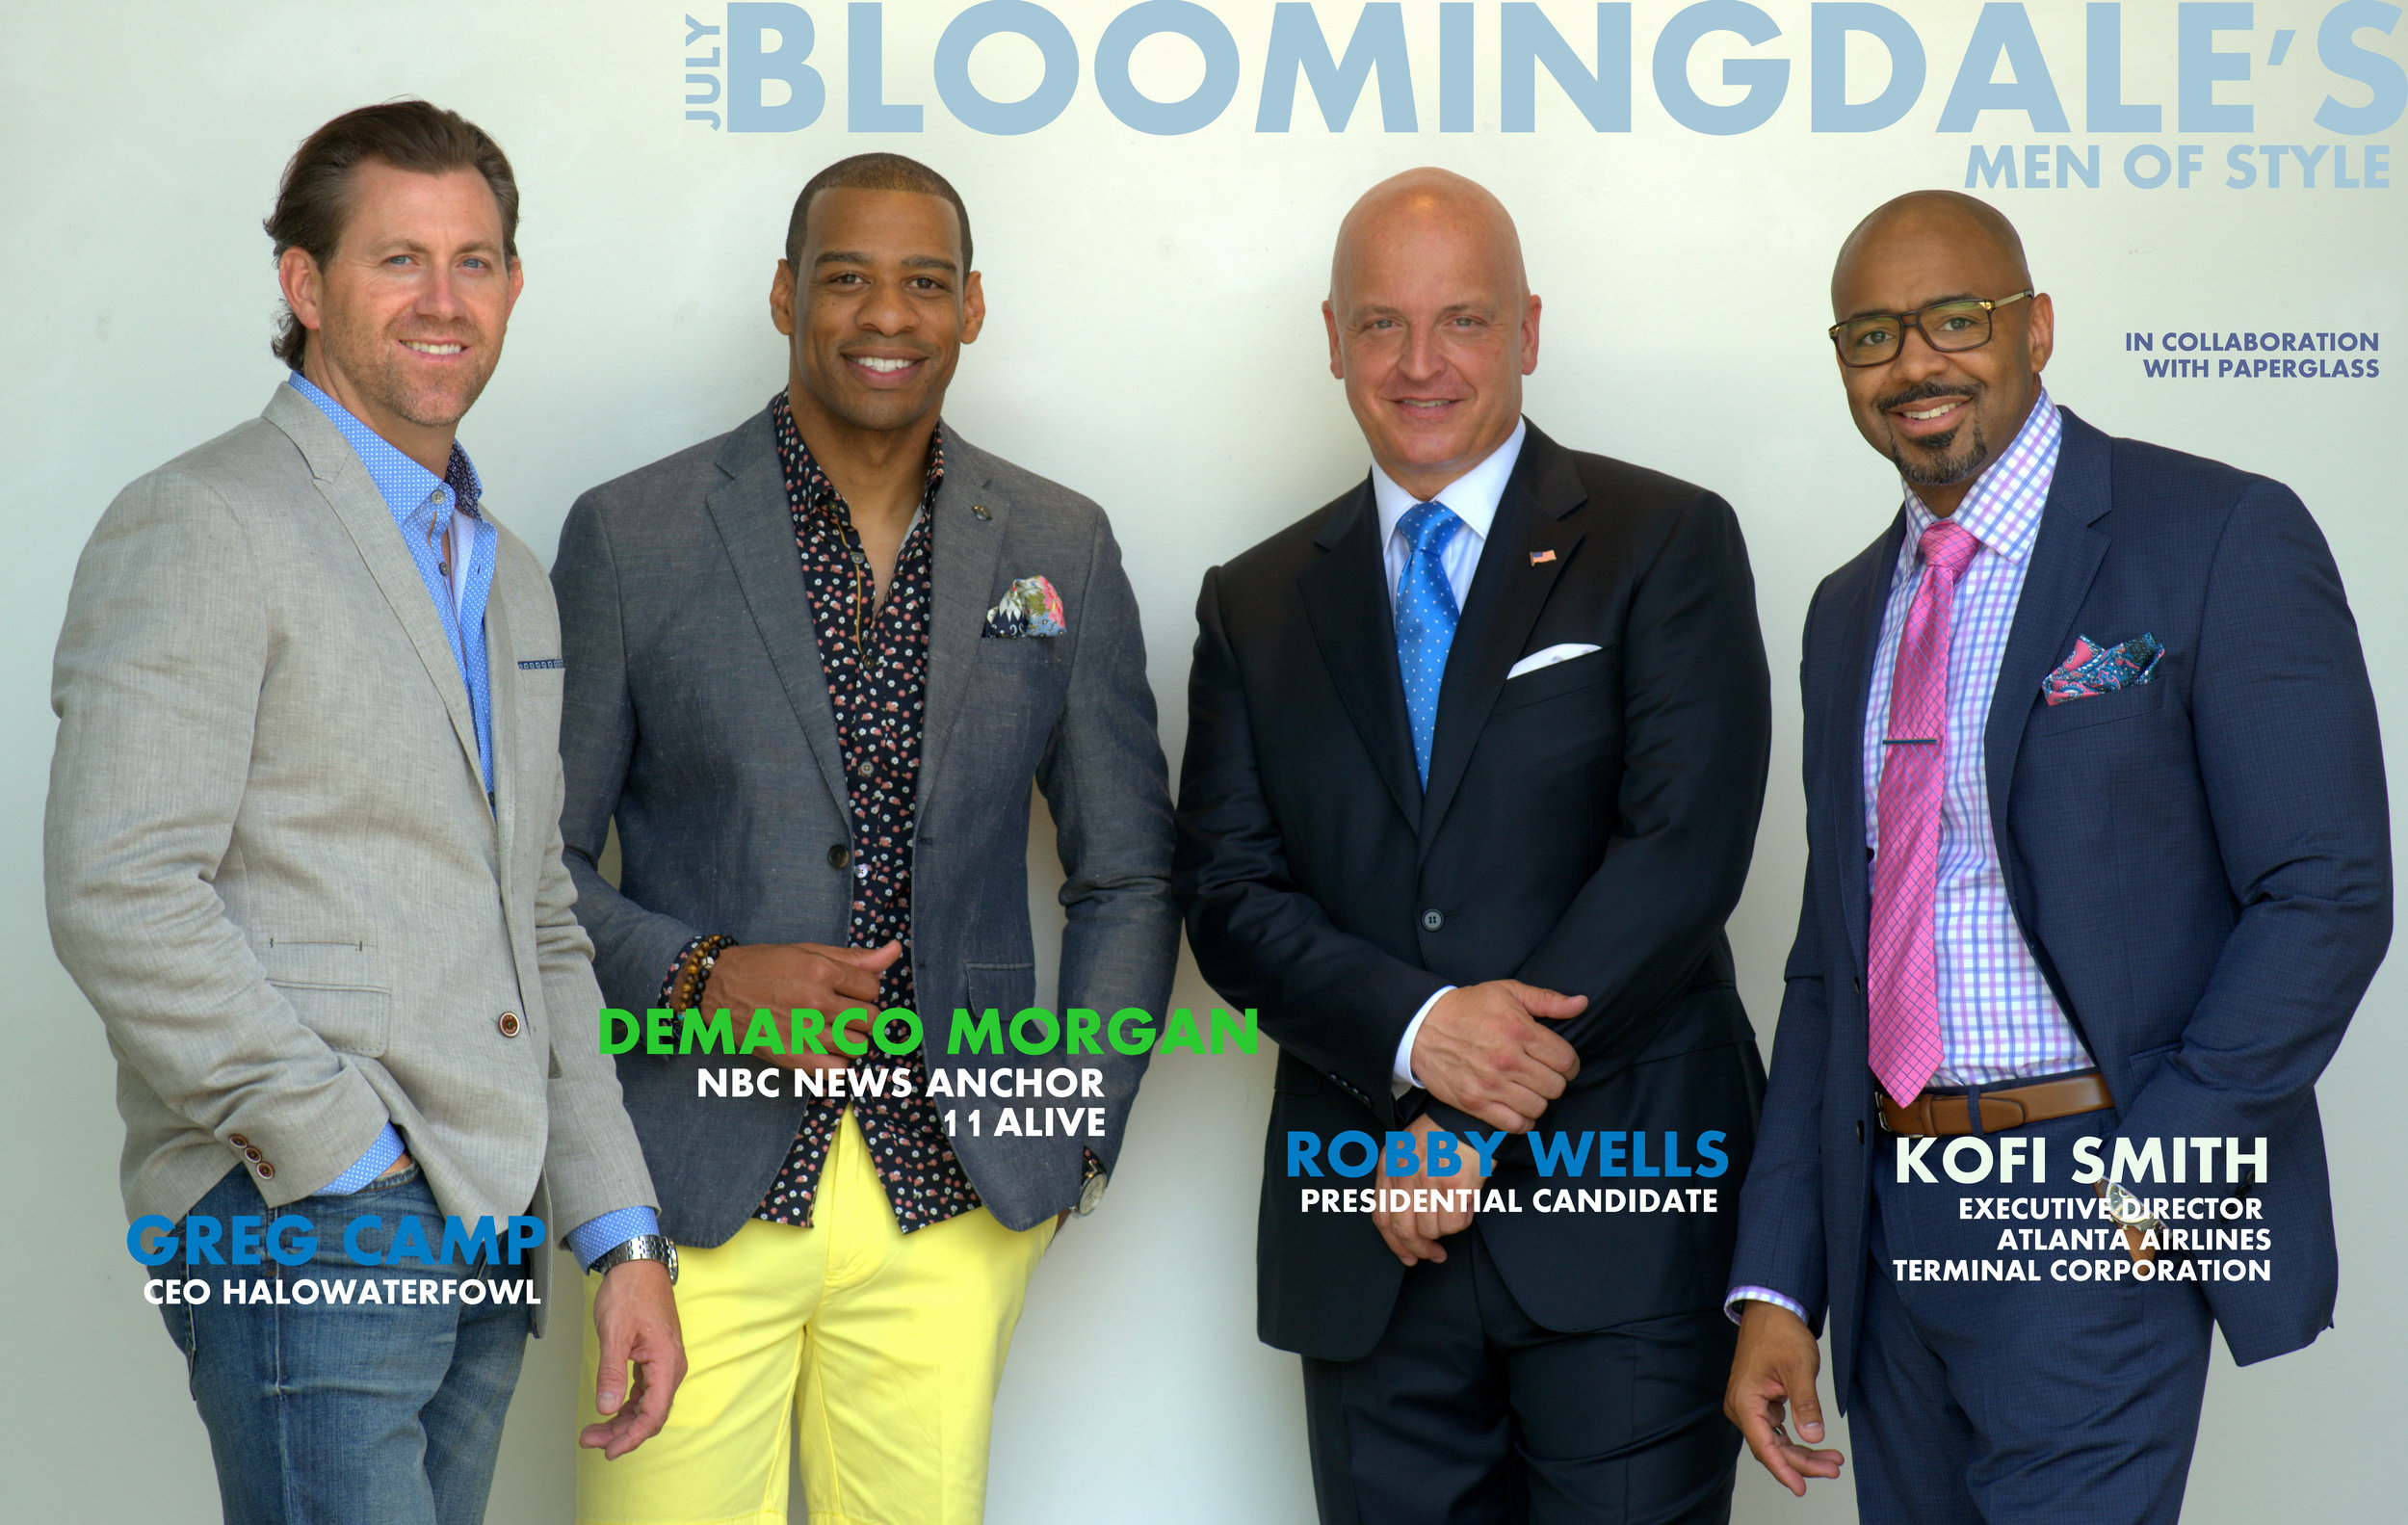 THE SECOND DELIVERY OF BLOOMINGDALE'S MEN OF STYLE WITH GREG CAMP, DEMARCO MORGAN, ROBBY WELLS, & KOFI SMITH